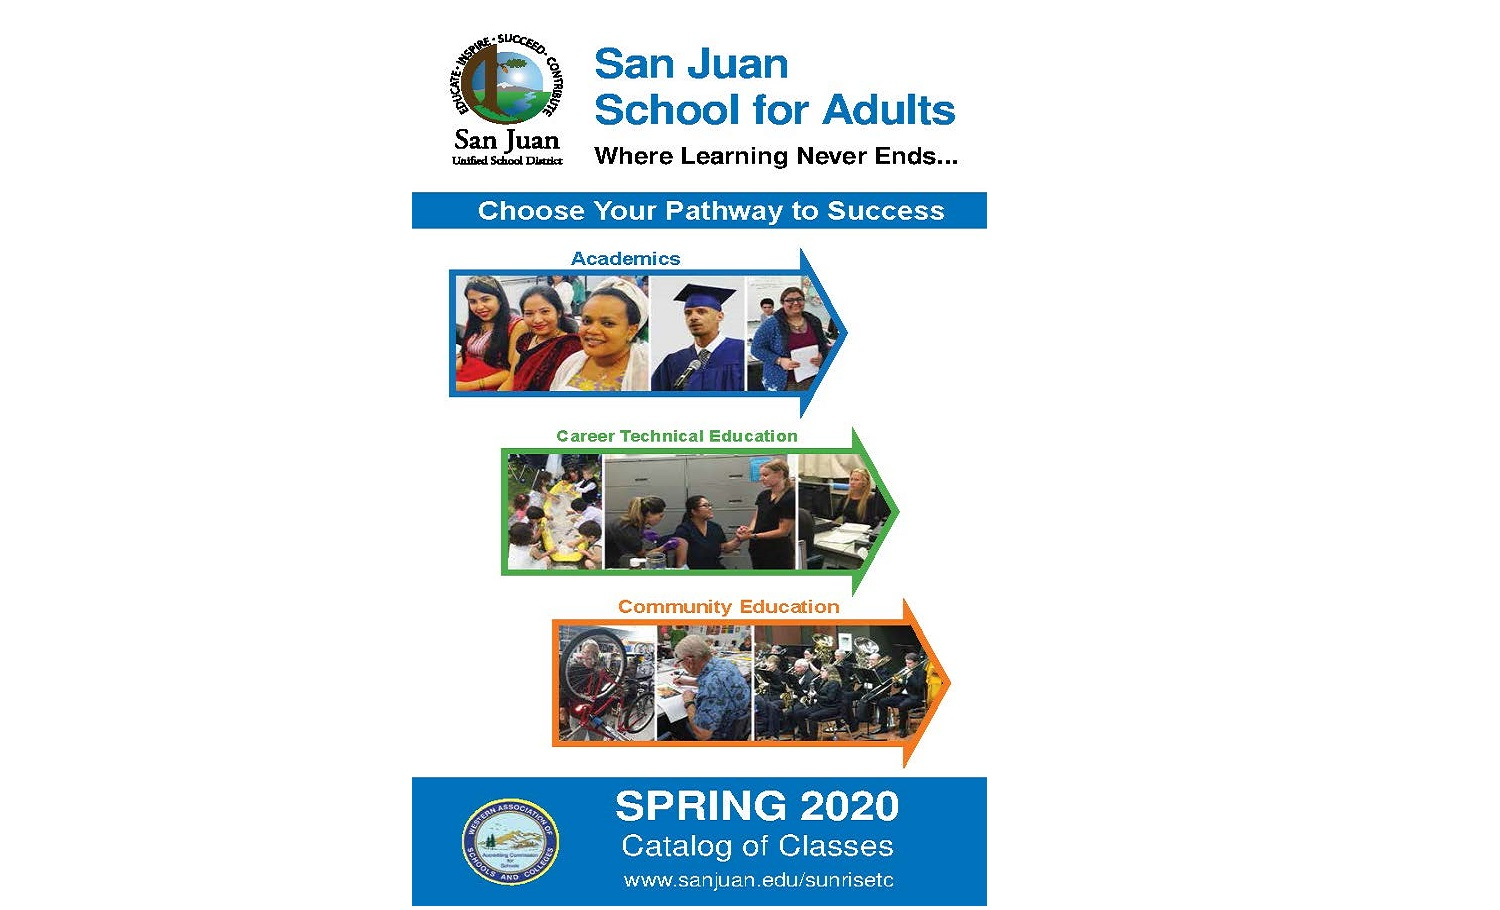 Spring 2020 Classes are ready for registration